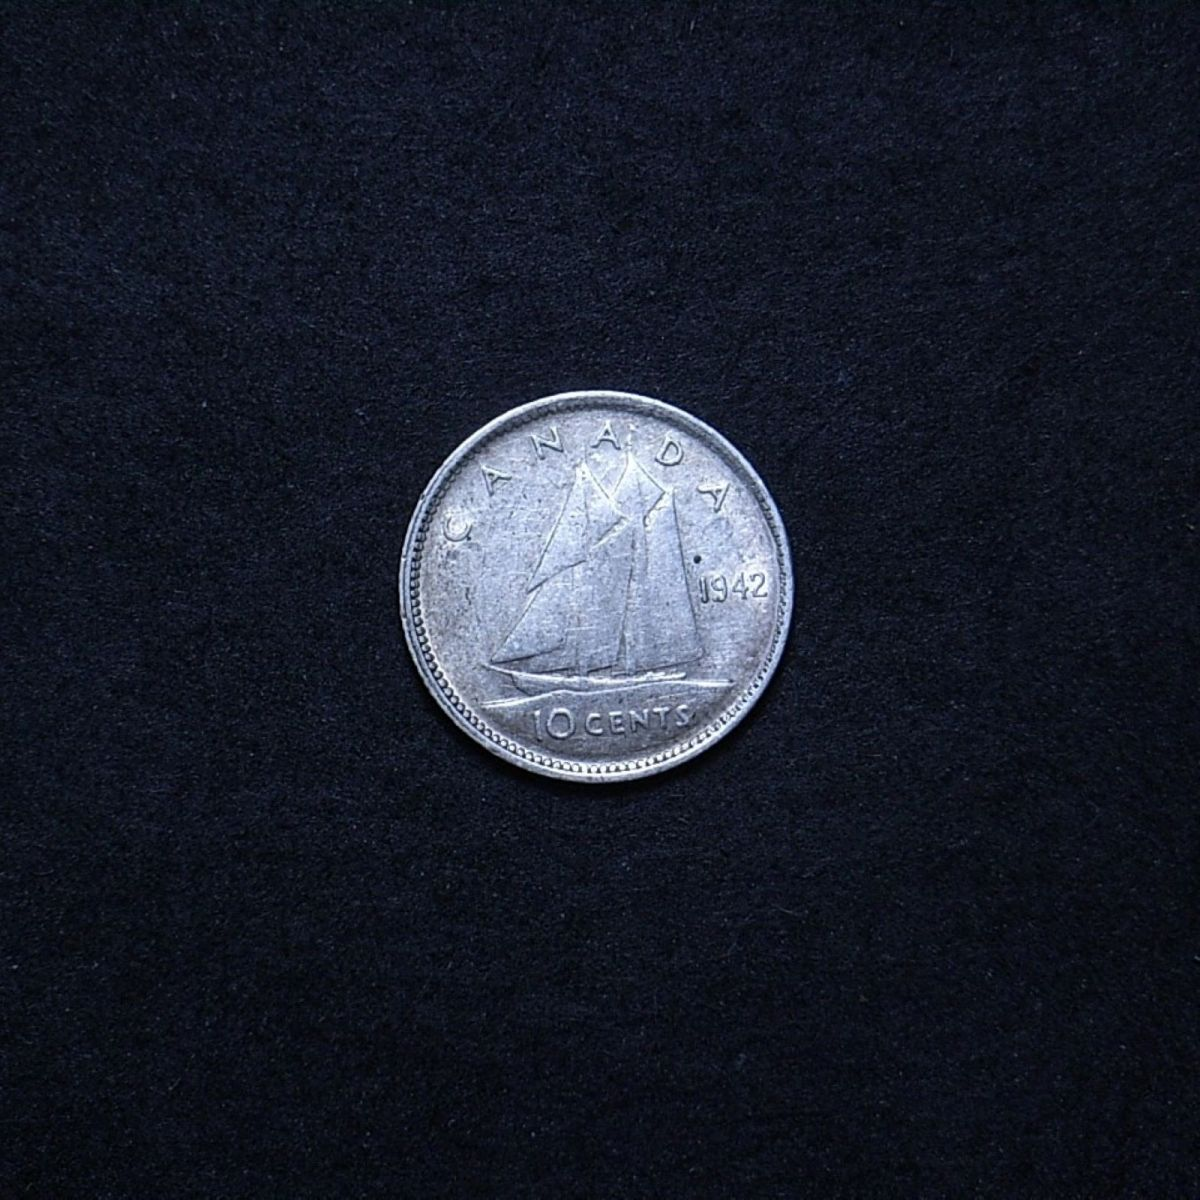 Canada 10 cents 1942 reverse showing overall appearance